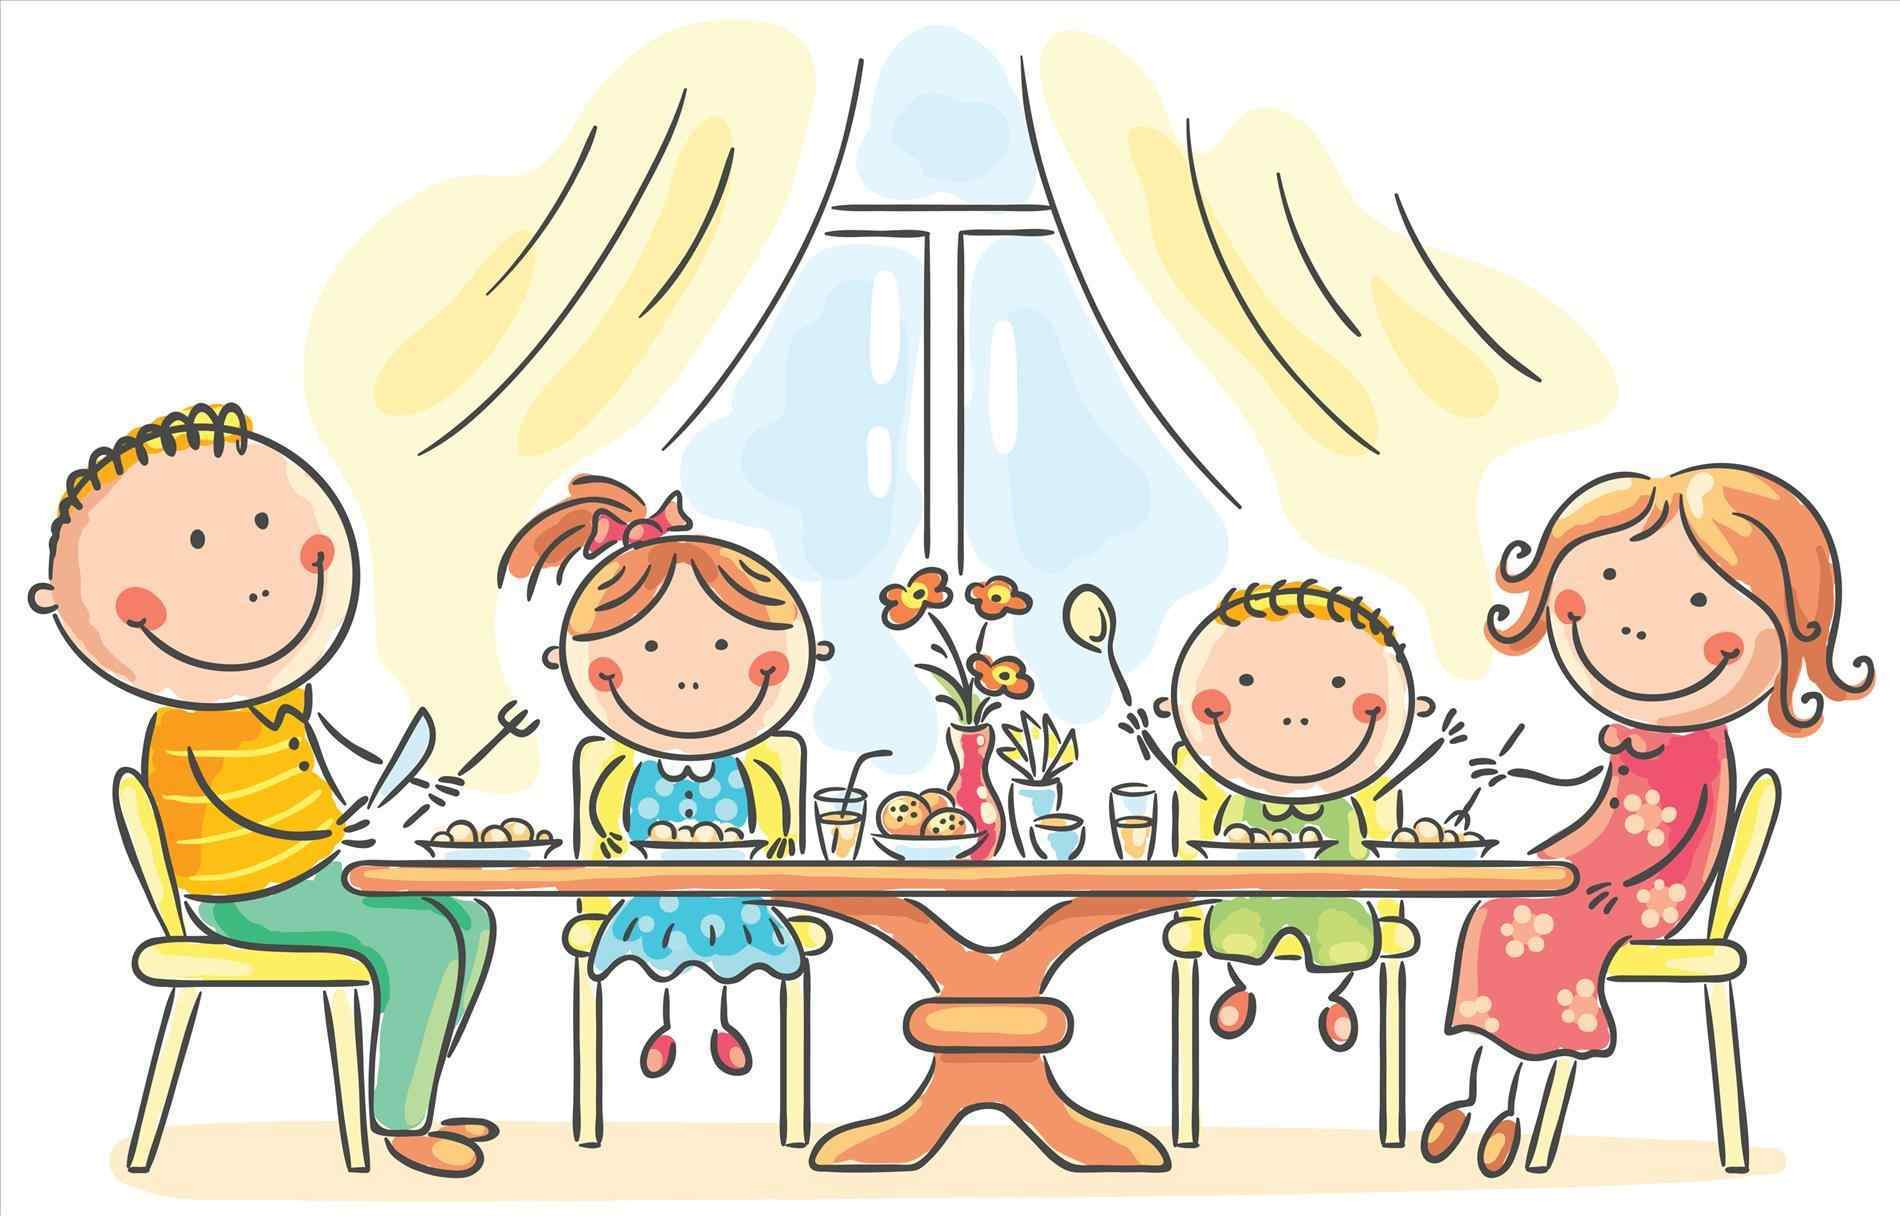 Breakfast clipart family. Nutritious pencil and in